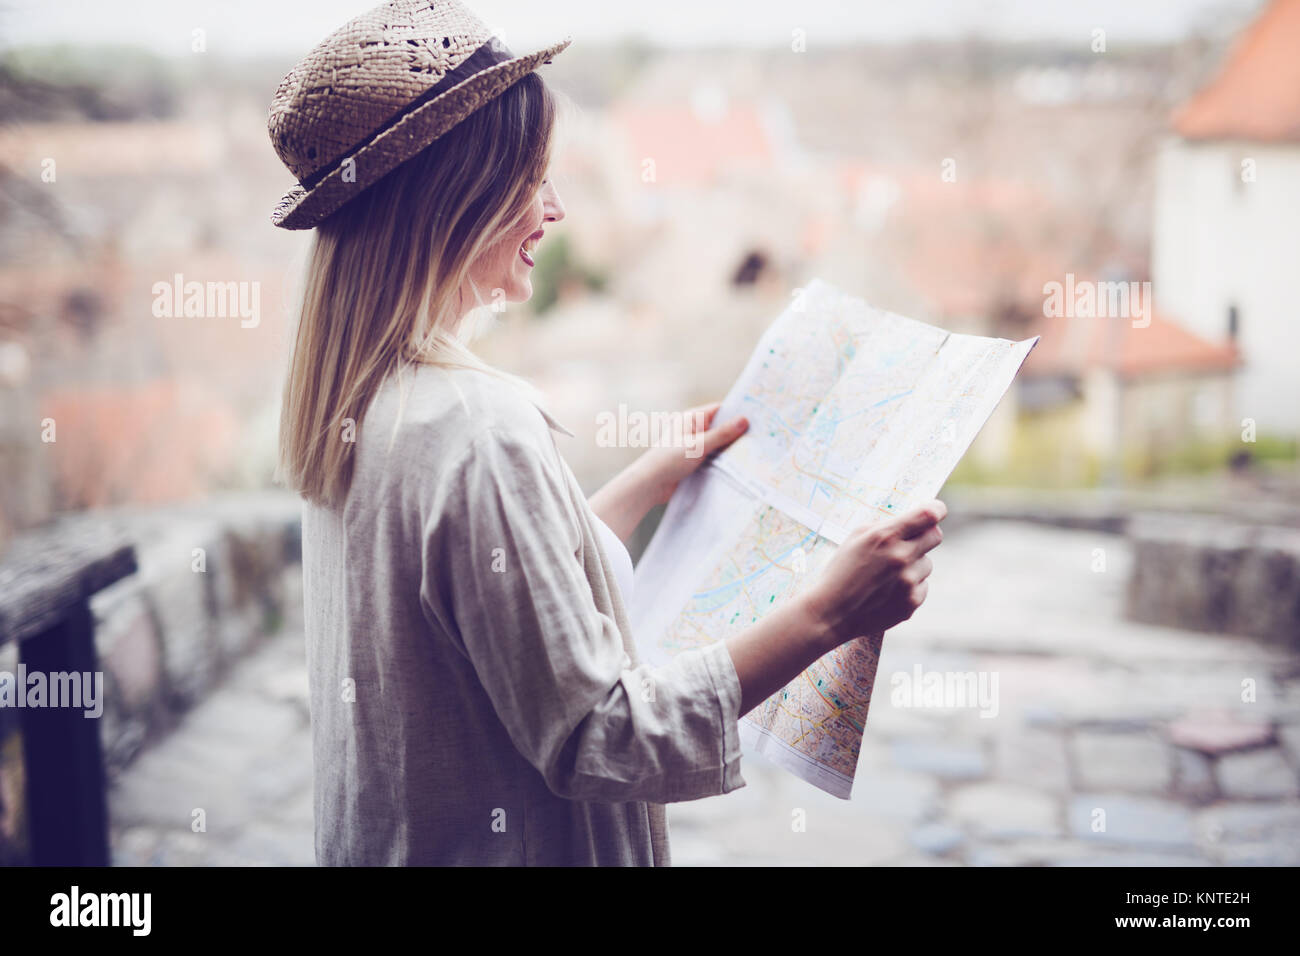 Happy female tourist sightseeing and exploring - Stock Image